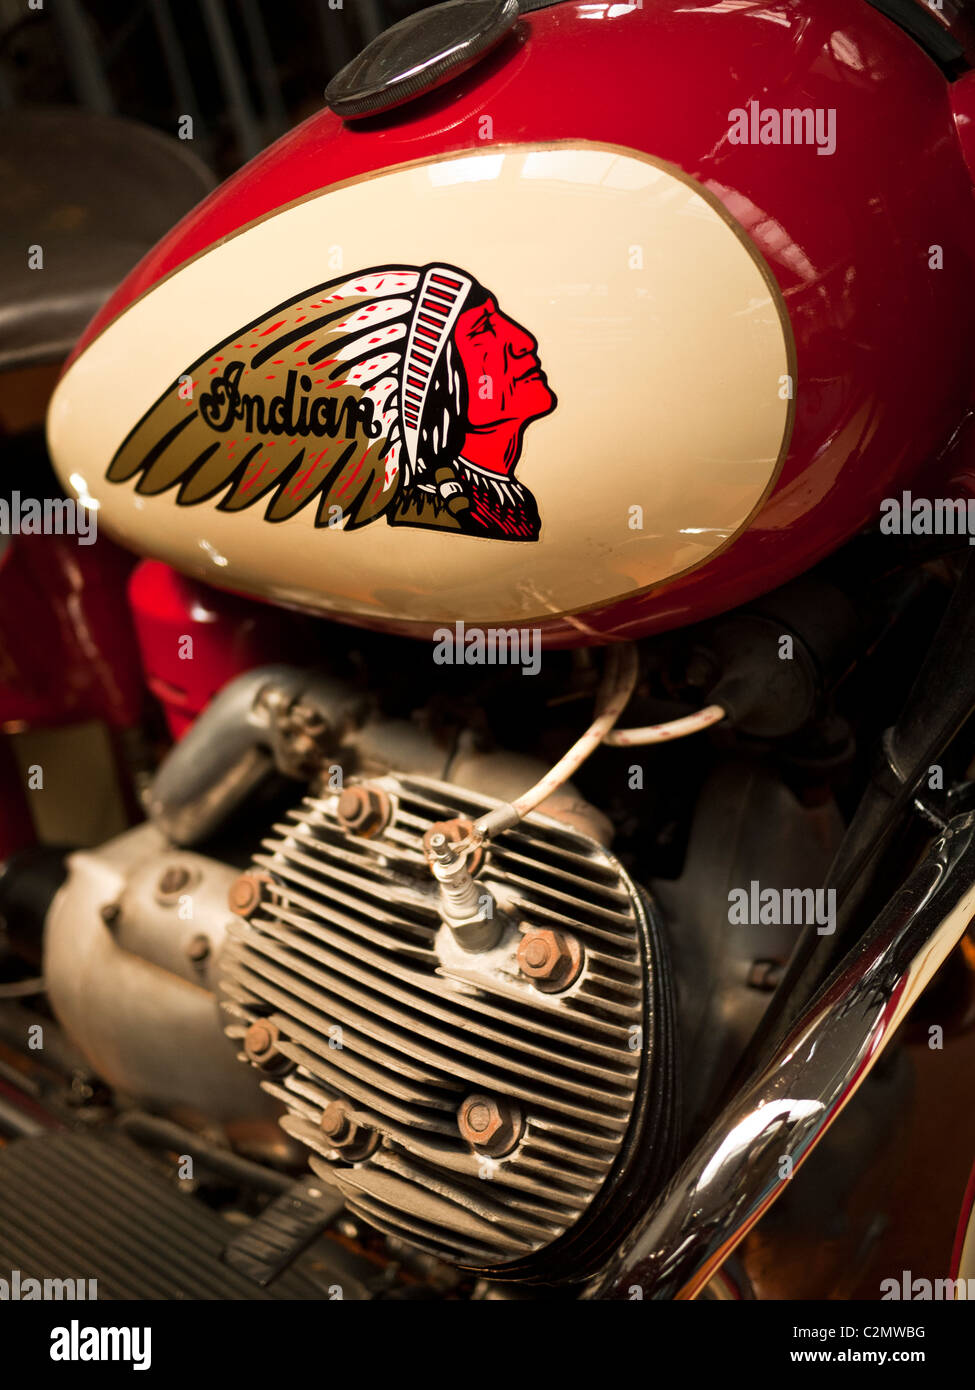 Indian Motorcycle, fuel tank and engine close-up - Stock Image